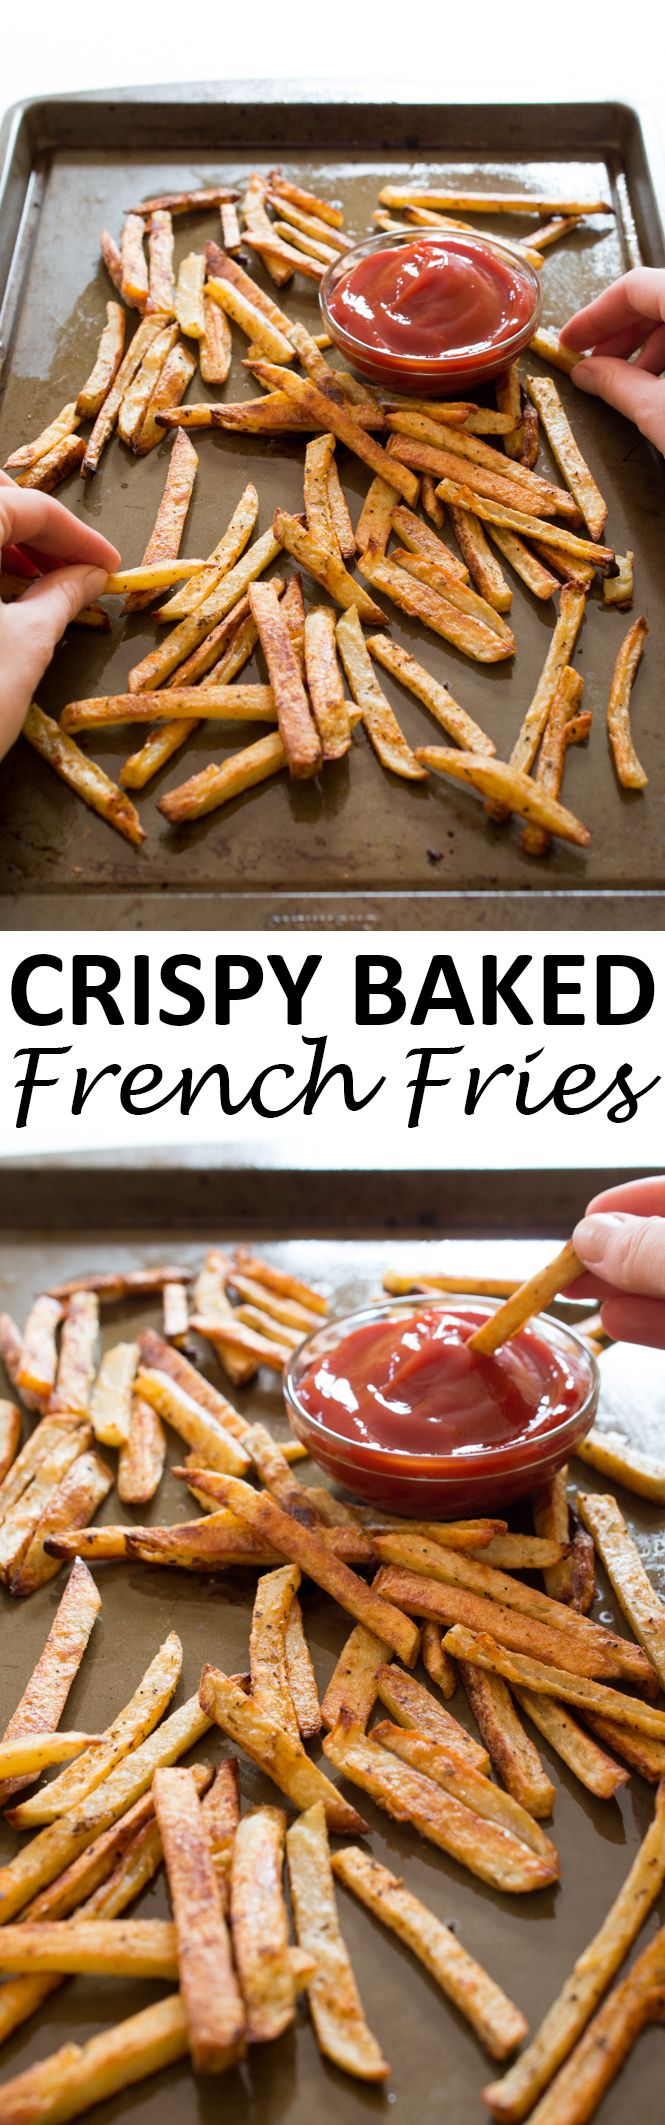 Super Crispy Baked French Fries. Soft and fluffy on the inside, extra crispy on the outside. These are fries you can feel good about eating! | chefsavvy.com #recipe #french #fries #snack #appetizer